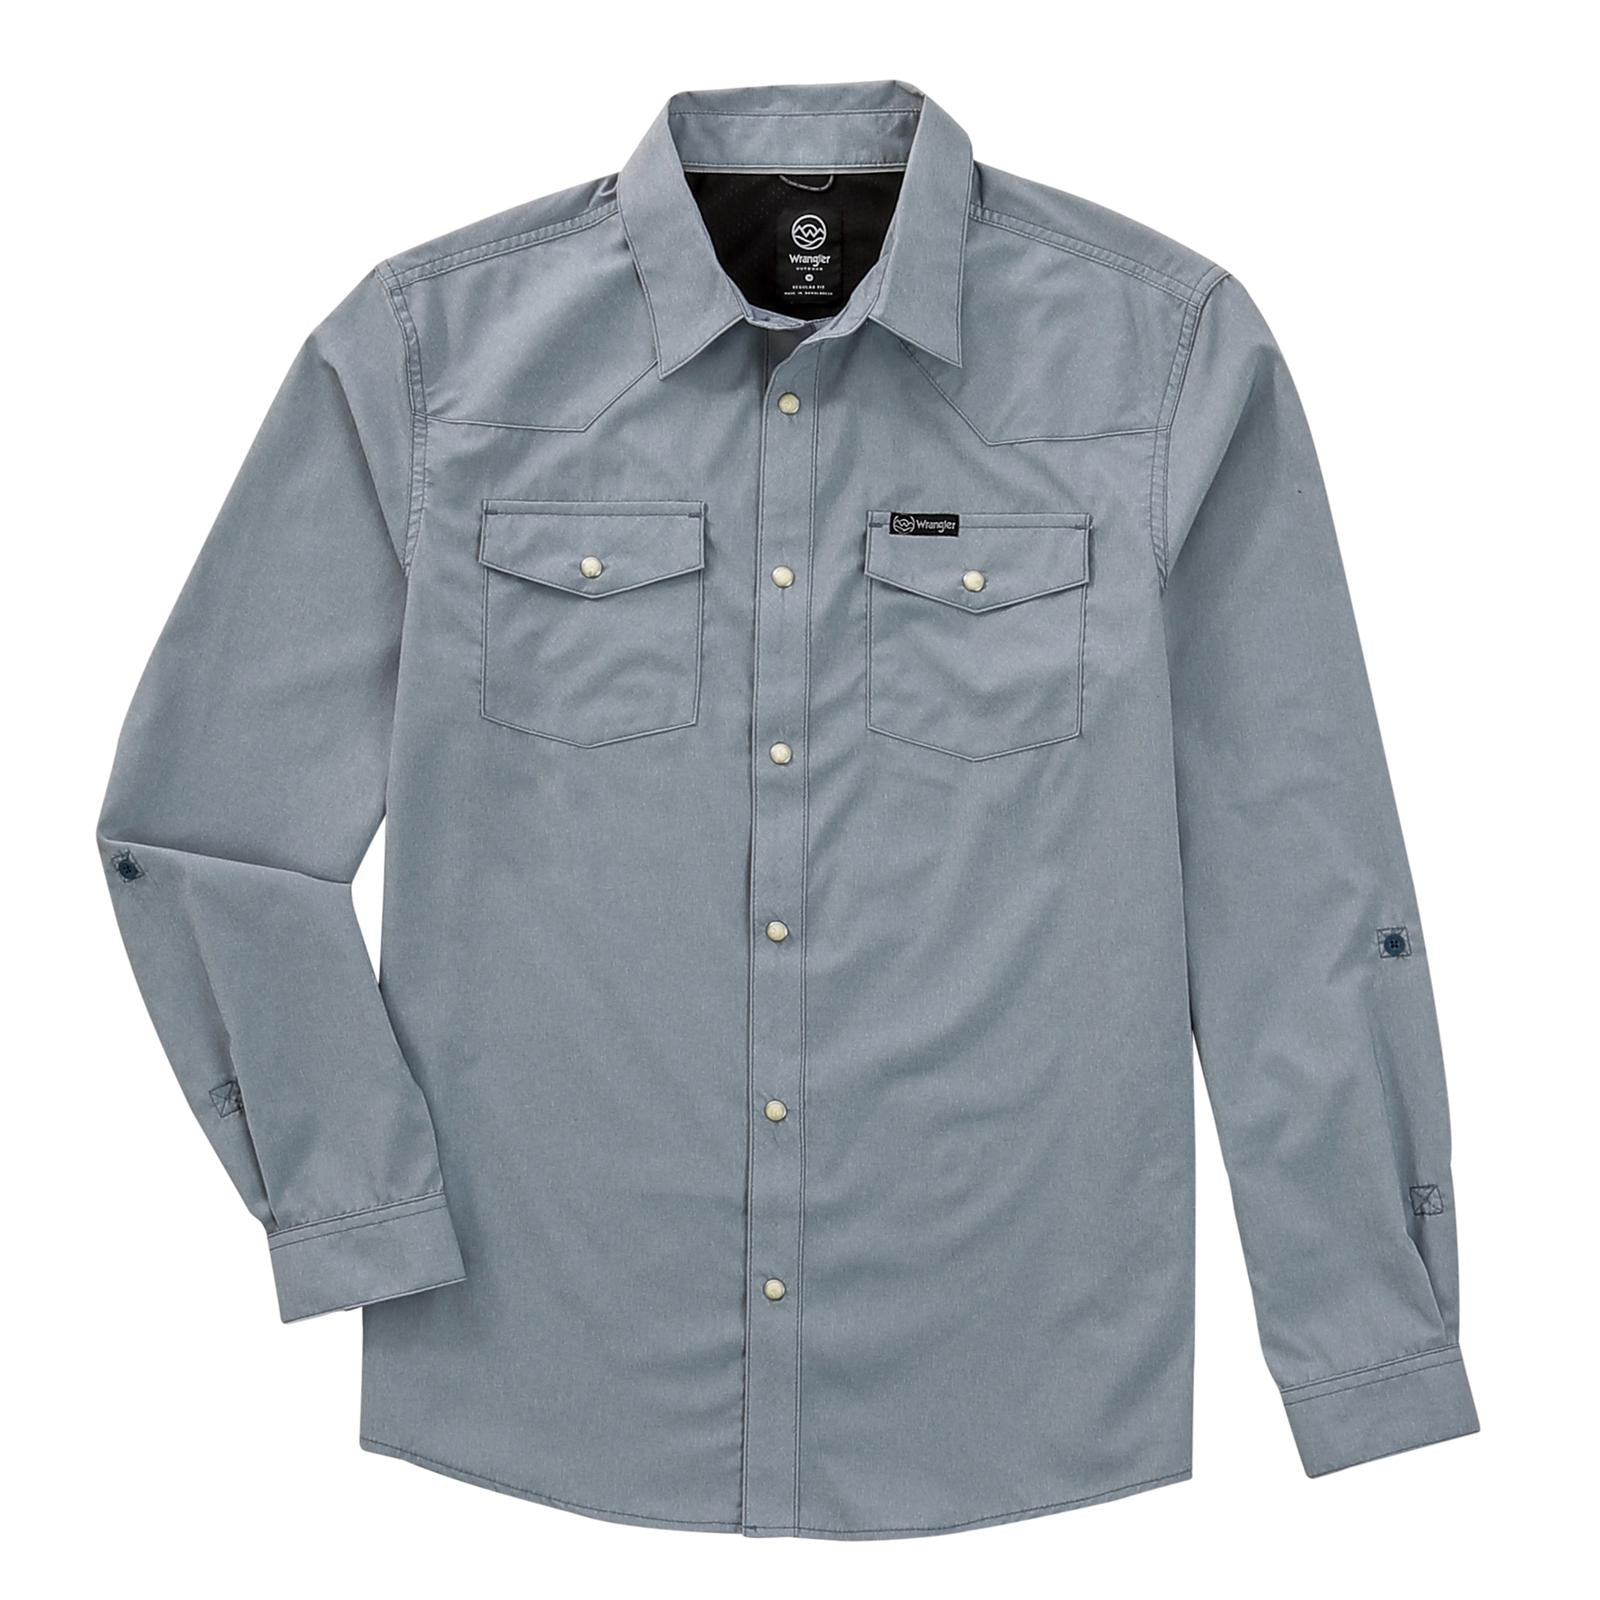 Wrangler Long Sleeve All Terrain Gear Fishing Shirt